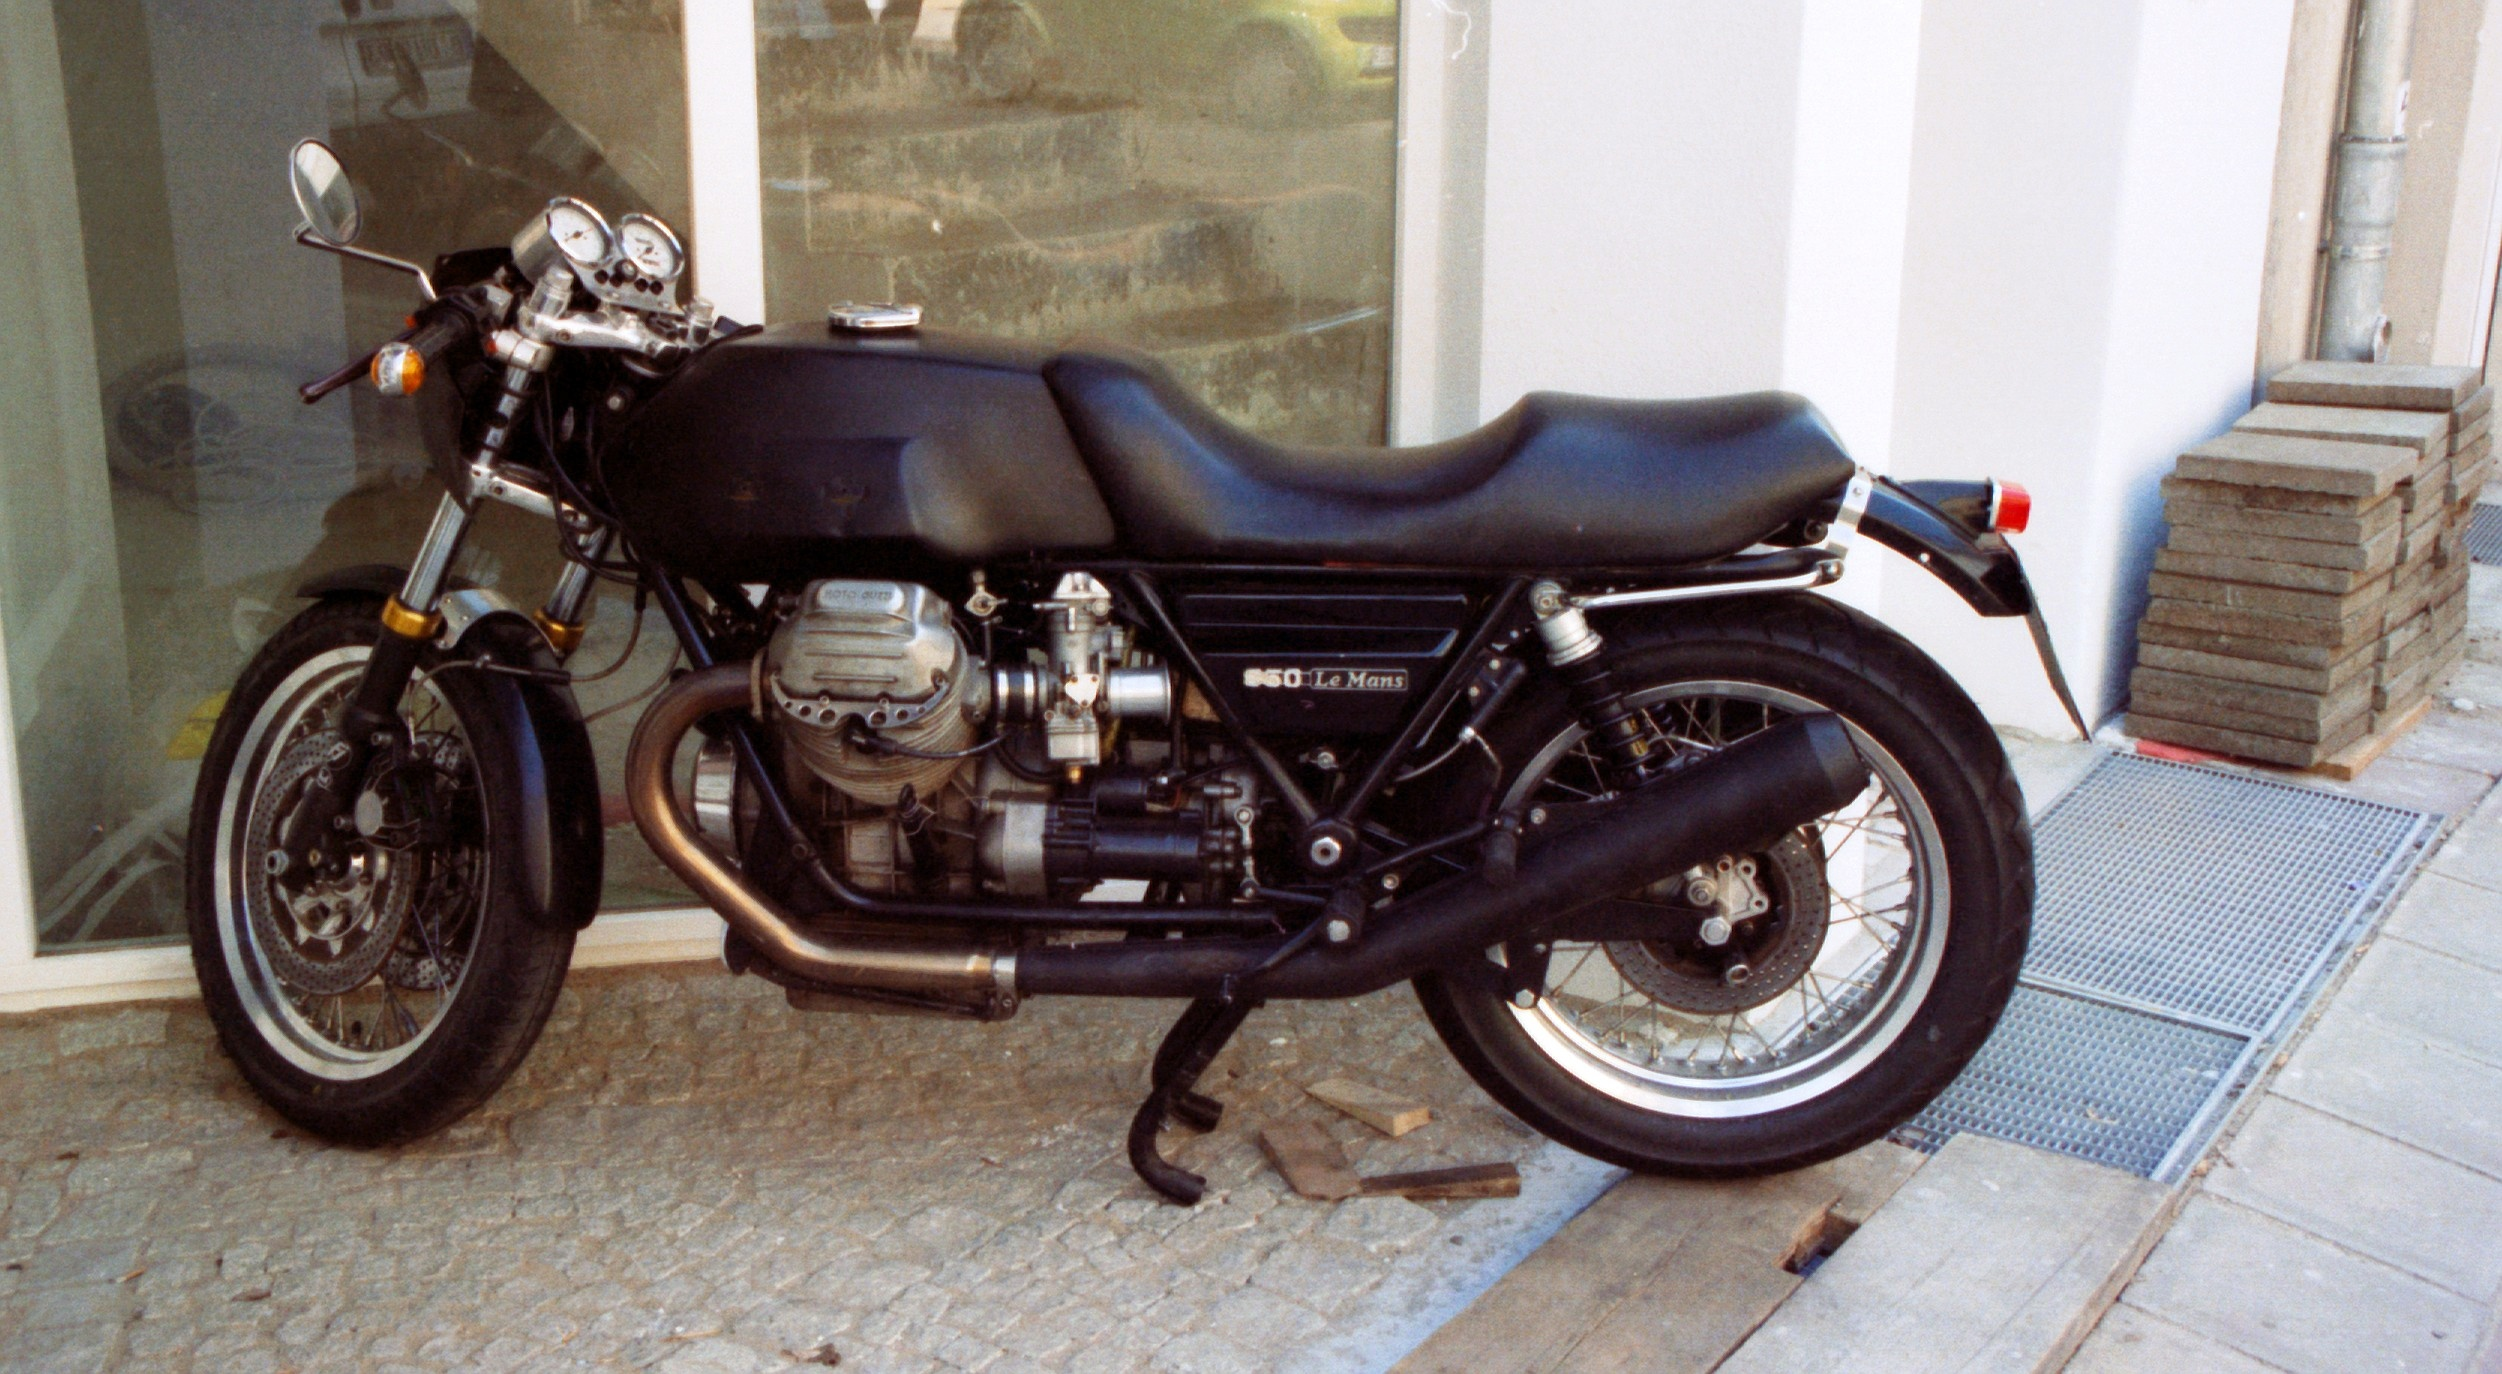 Moto Guzzi Quota 1000 images #109287